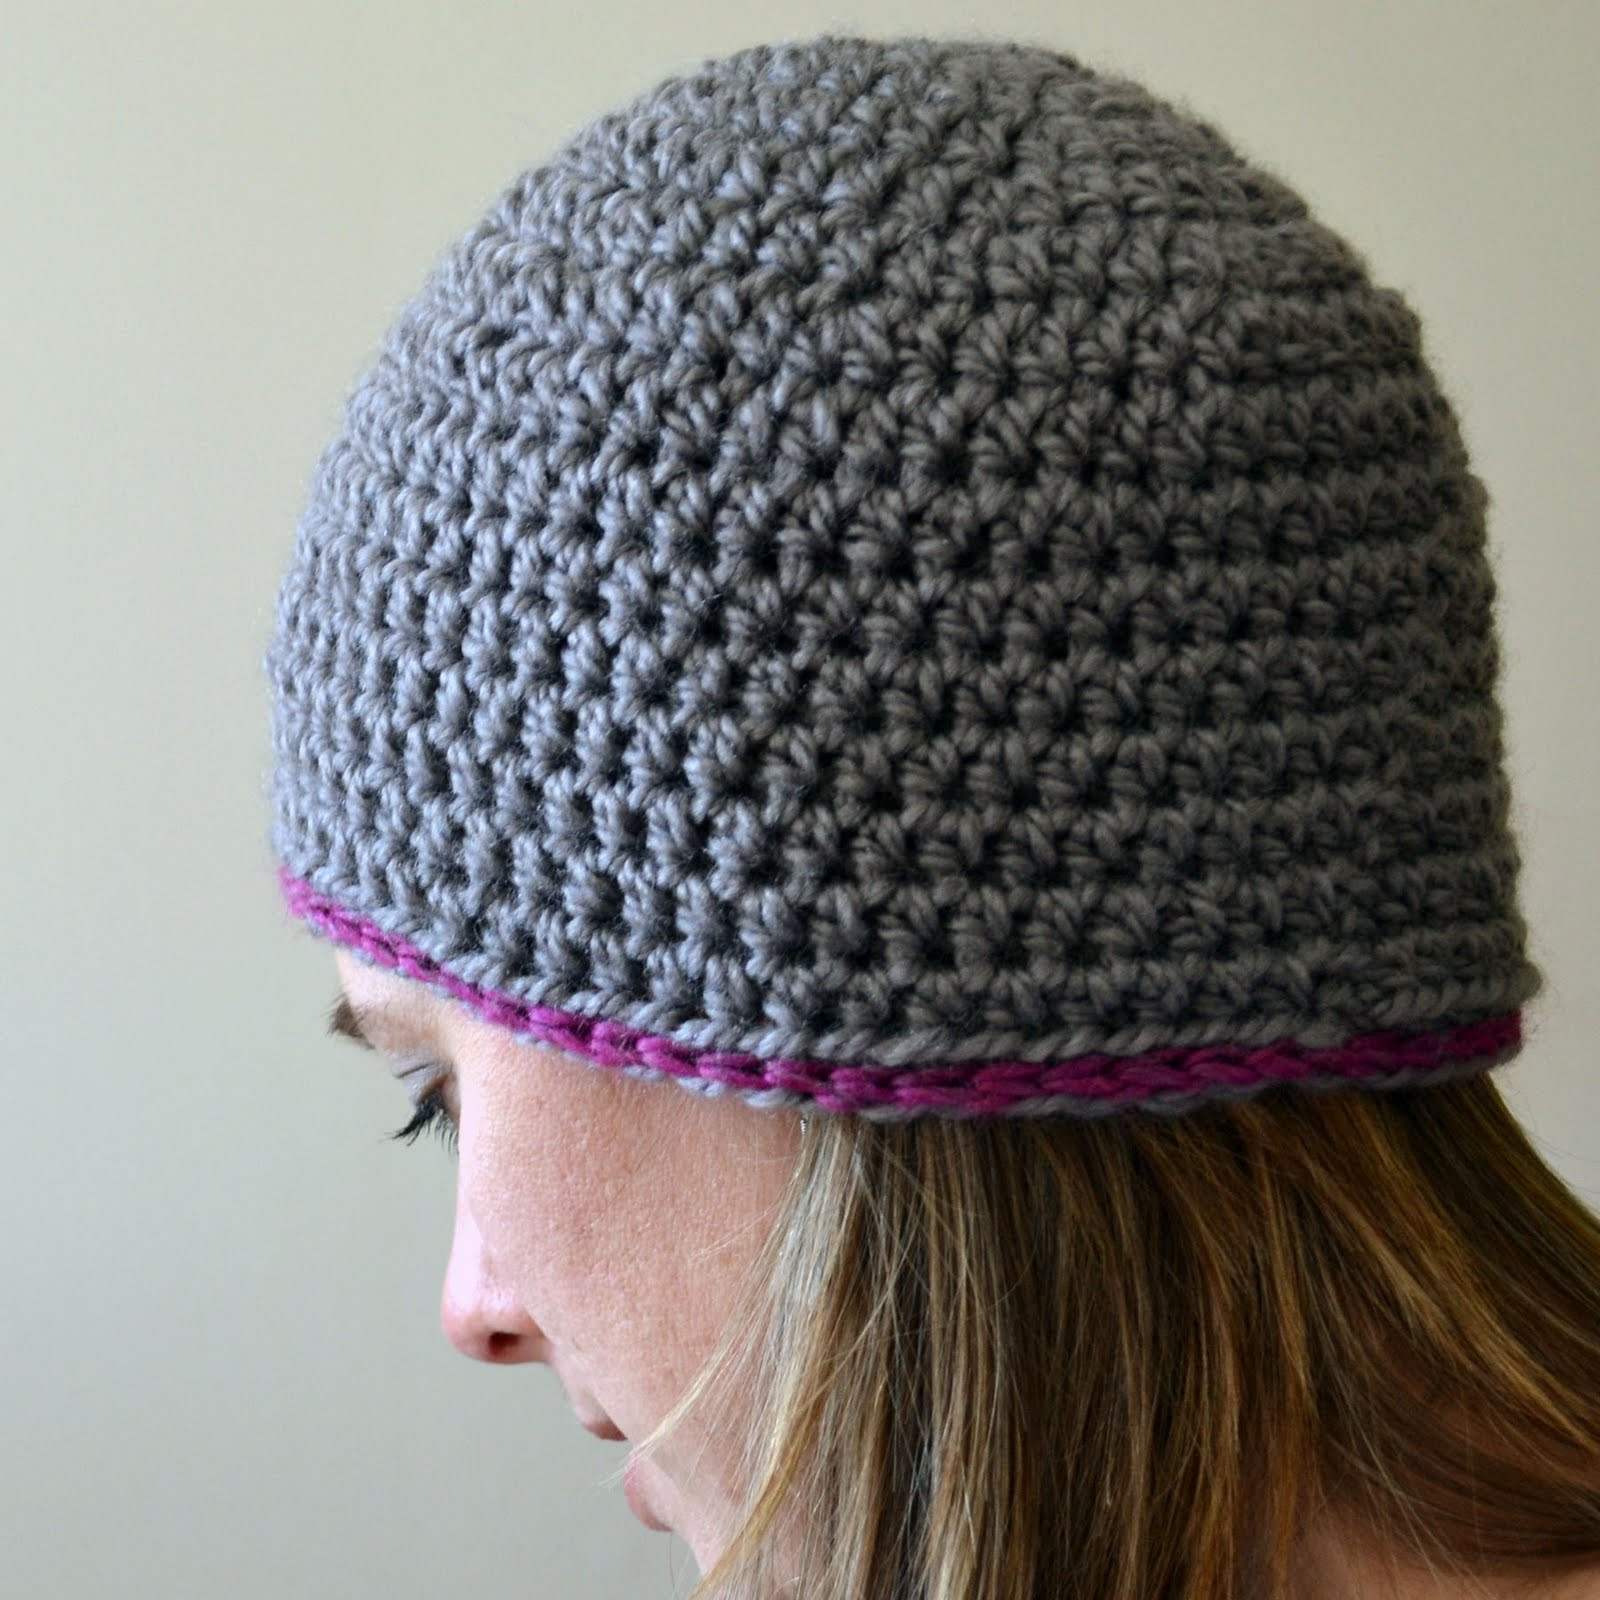 Easy Crochet Hat Fresh Hdc Crochet Beanie Pattern – Easy Crochet Patterns Of Delightful 50 Models Easy Crochet Hat